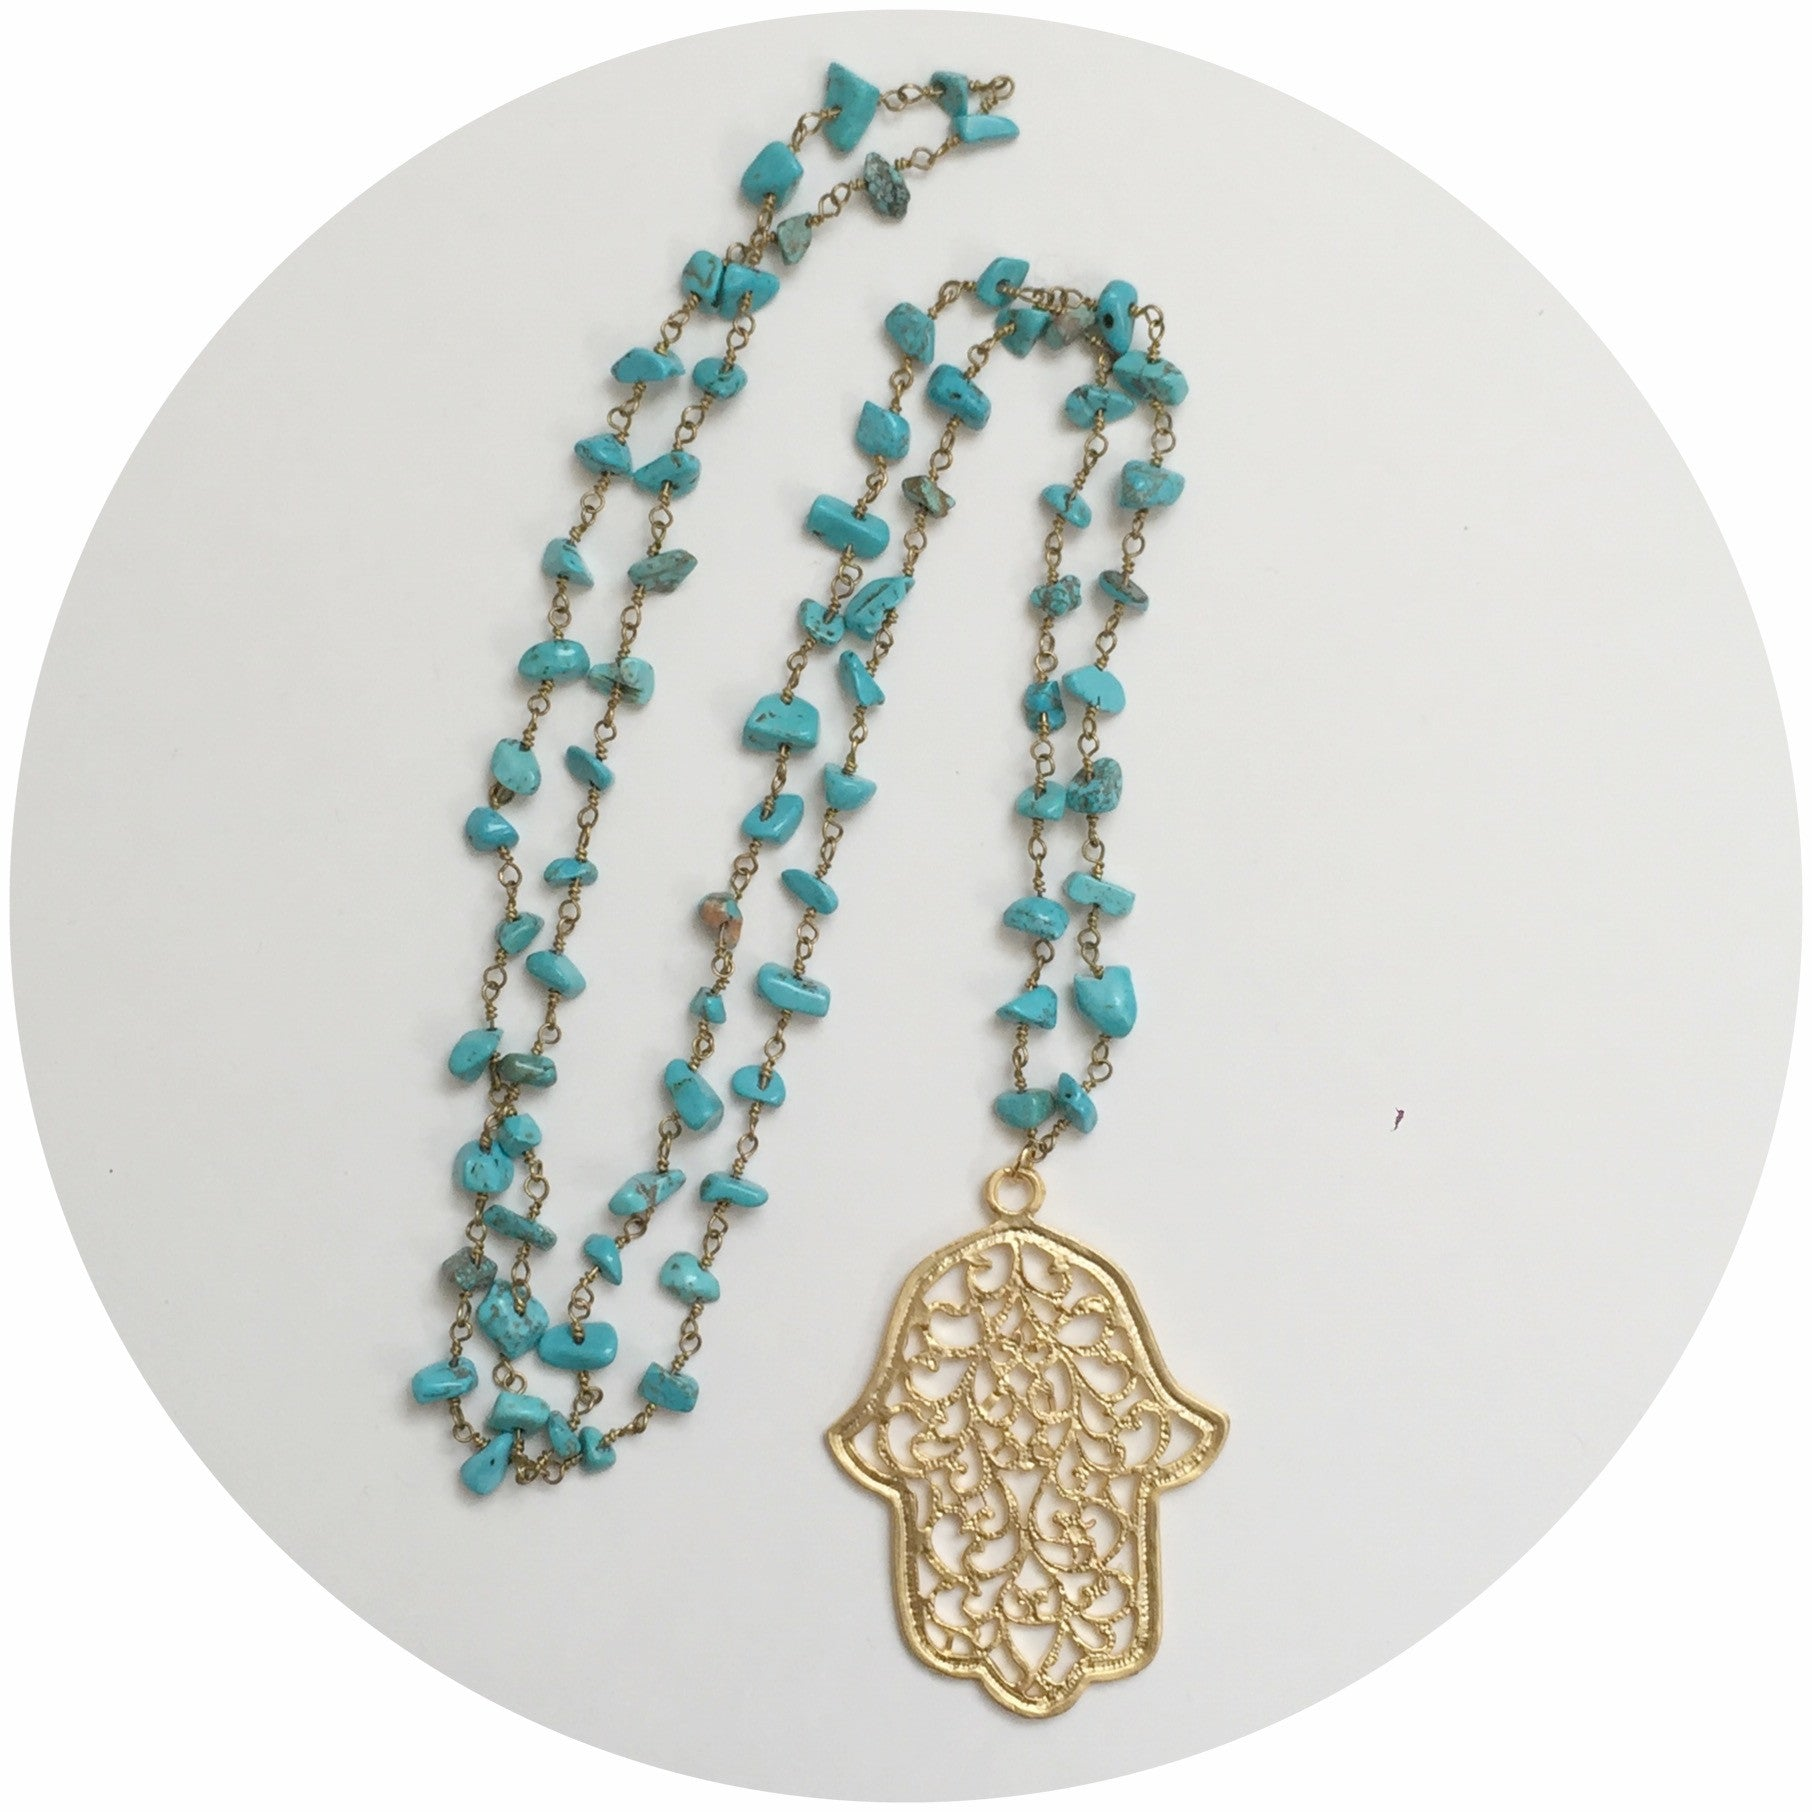 Turquoise Chain with Large Hamsa Necklace - Oriana Lamarca LLC